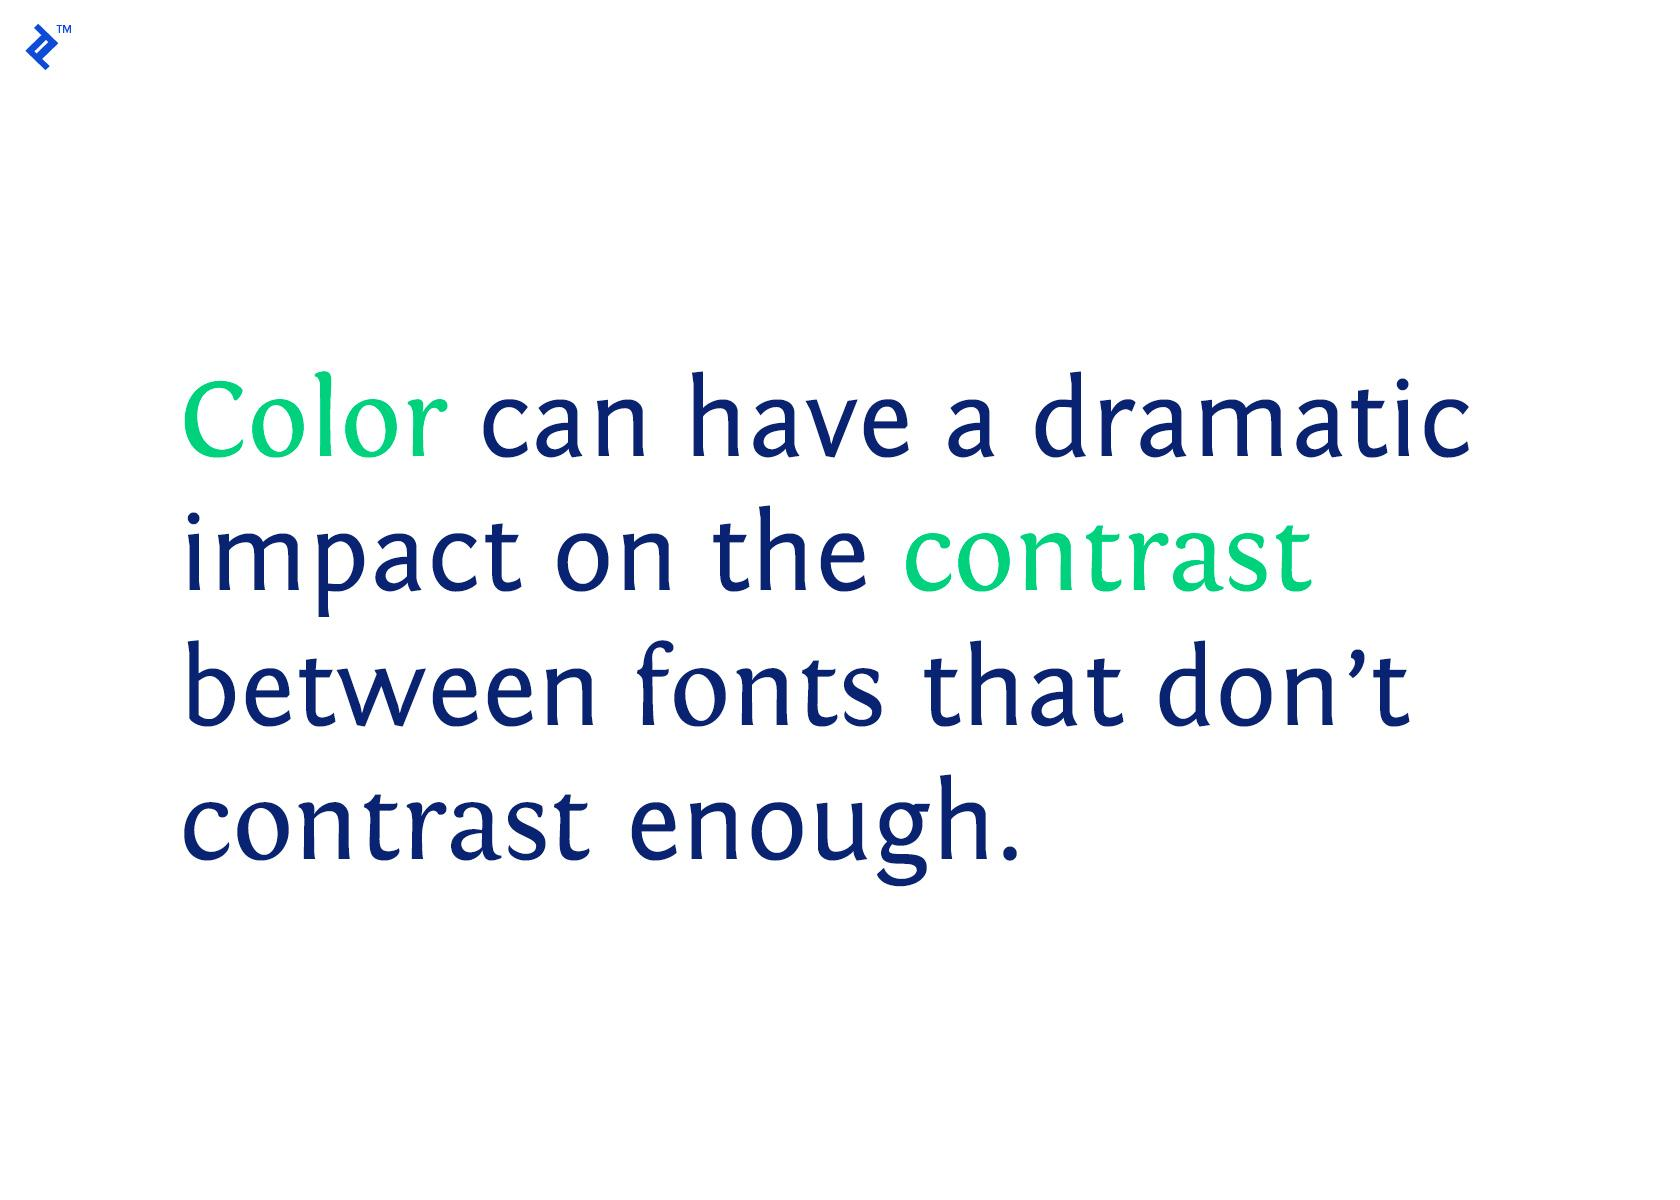 Fonts that go together don't always have enough contrast; adding color can help.